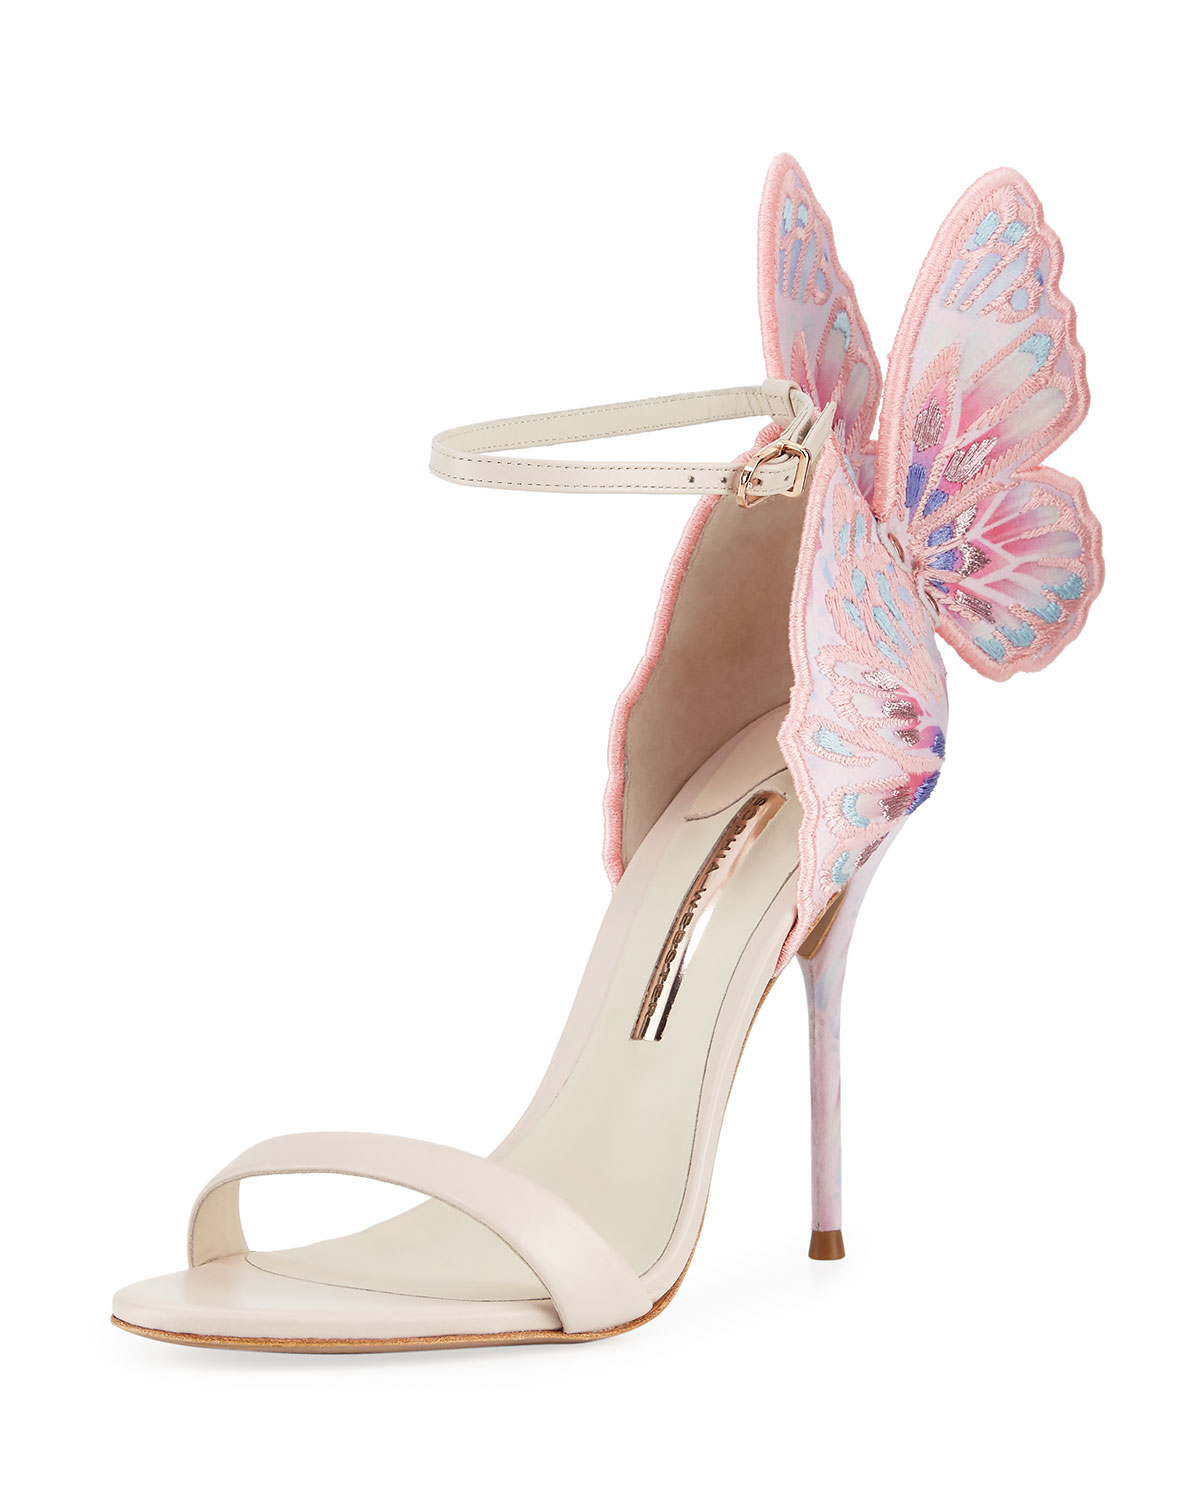 9f923a024db Sophia Webster Chiara Embroidered Butterfly Sandals